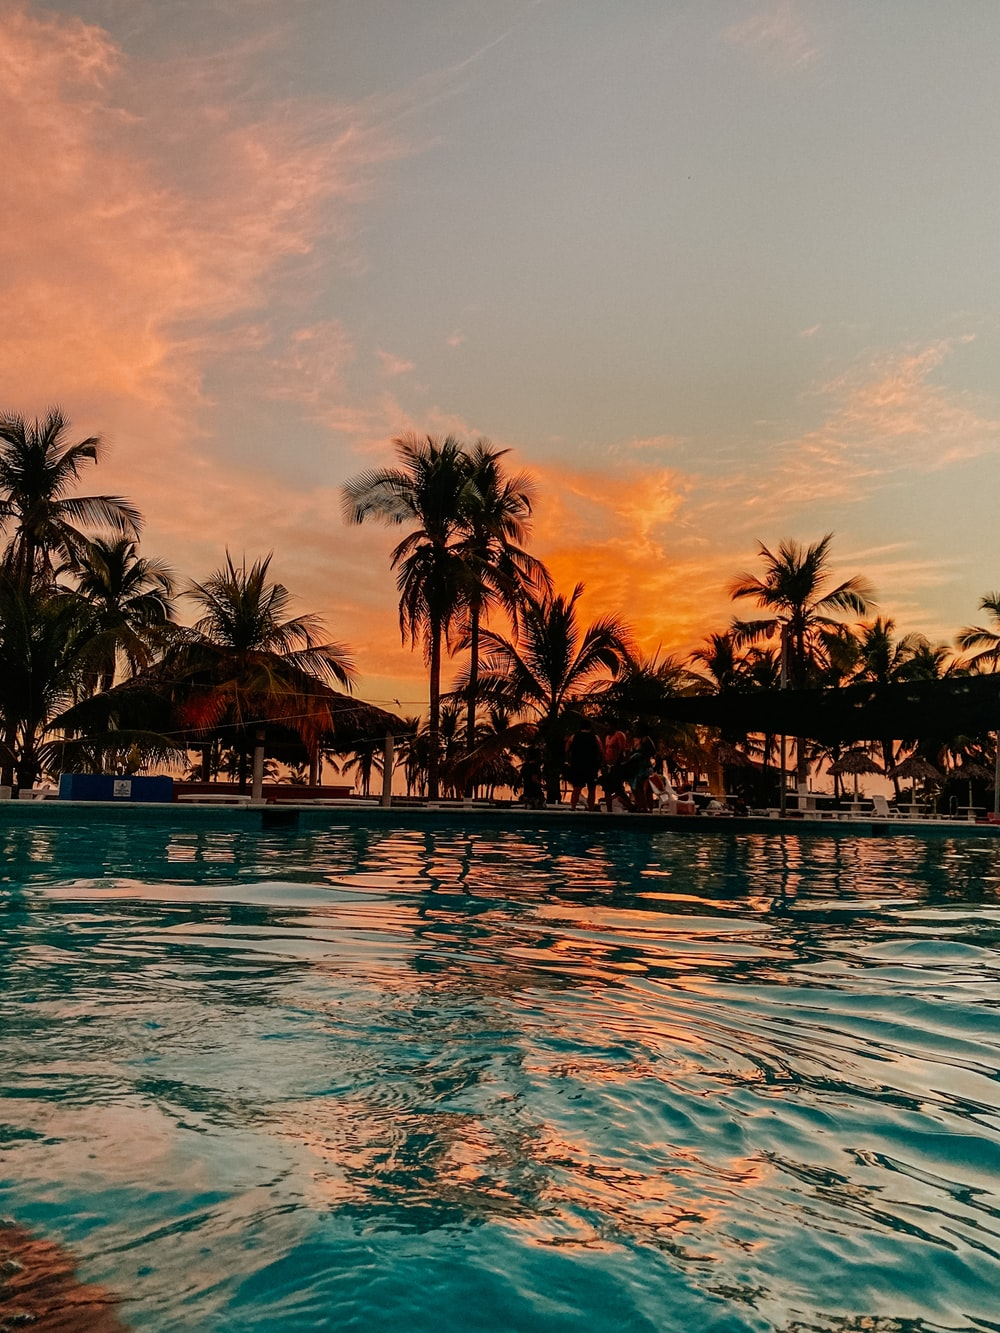 palm trees on body of water during sunset